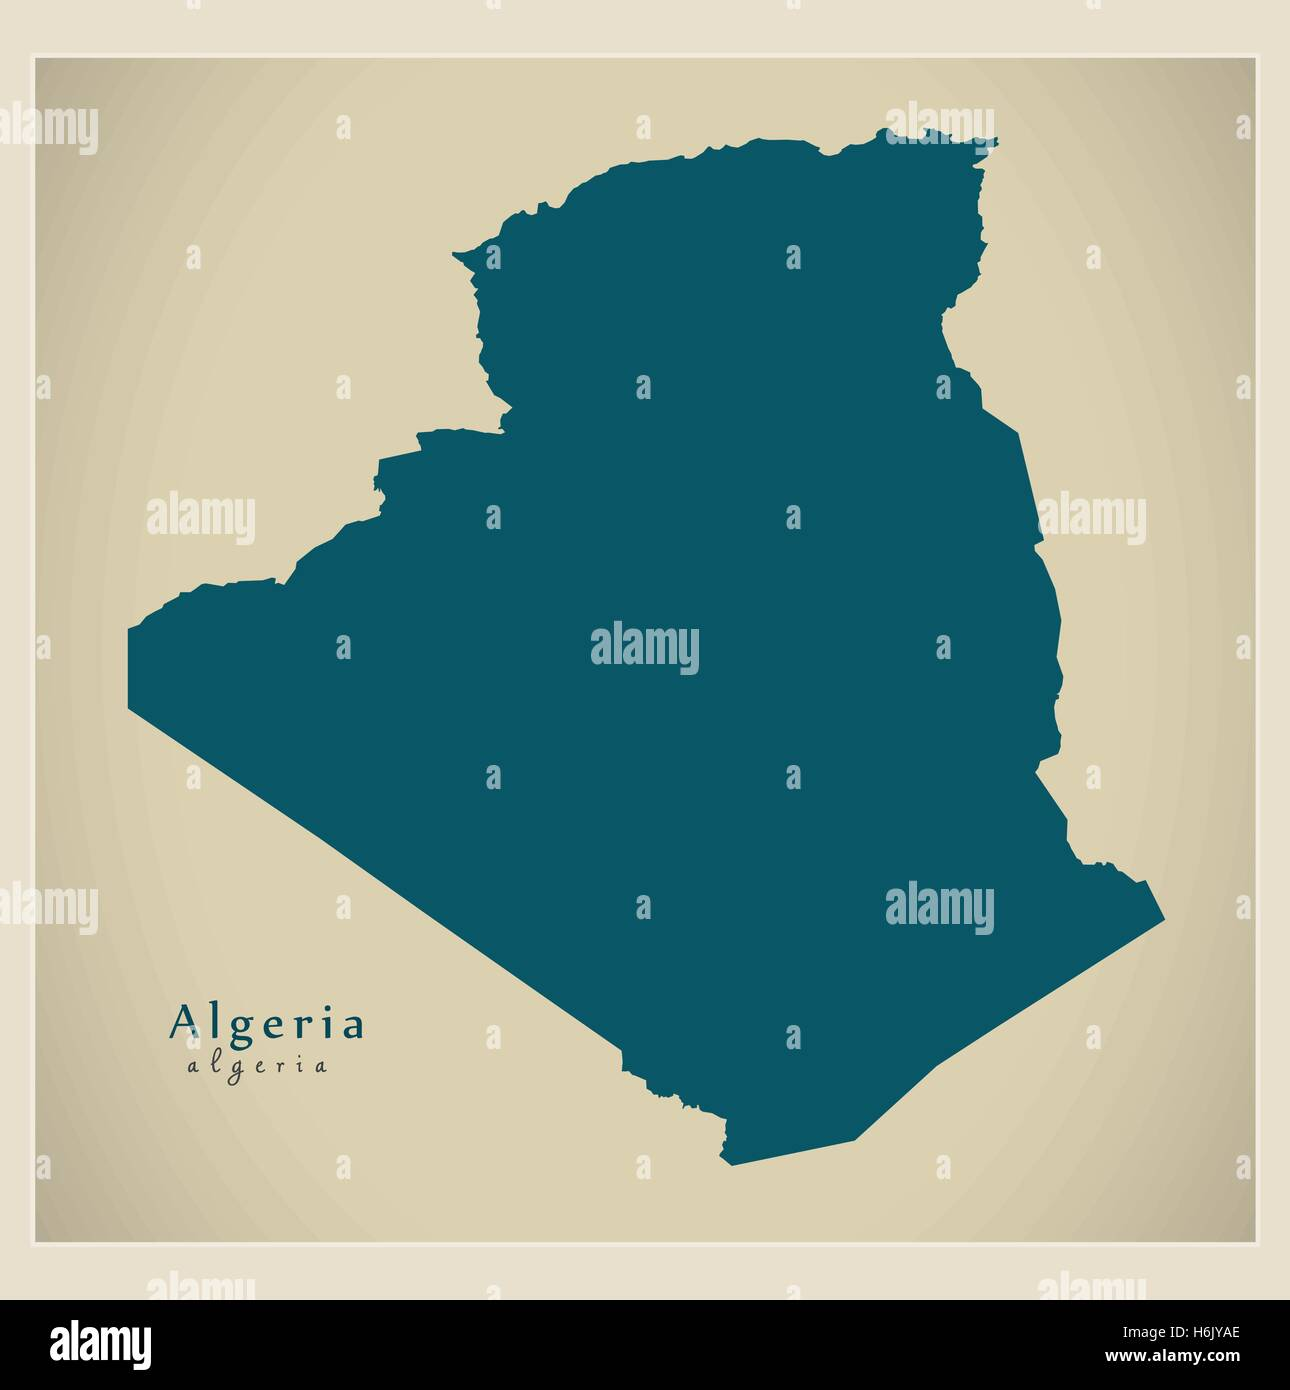 Algeria Map Stock Photos & Algeria Map Stock Images - Alamy